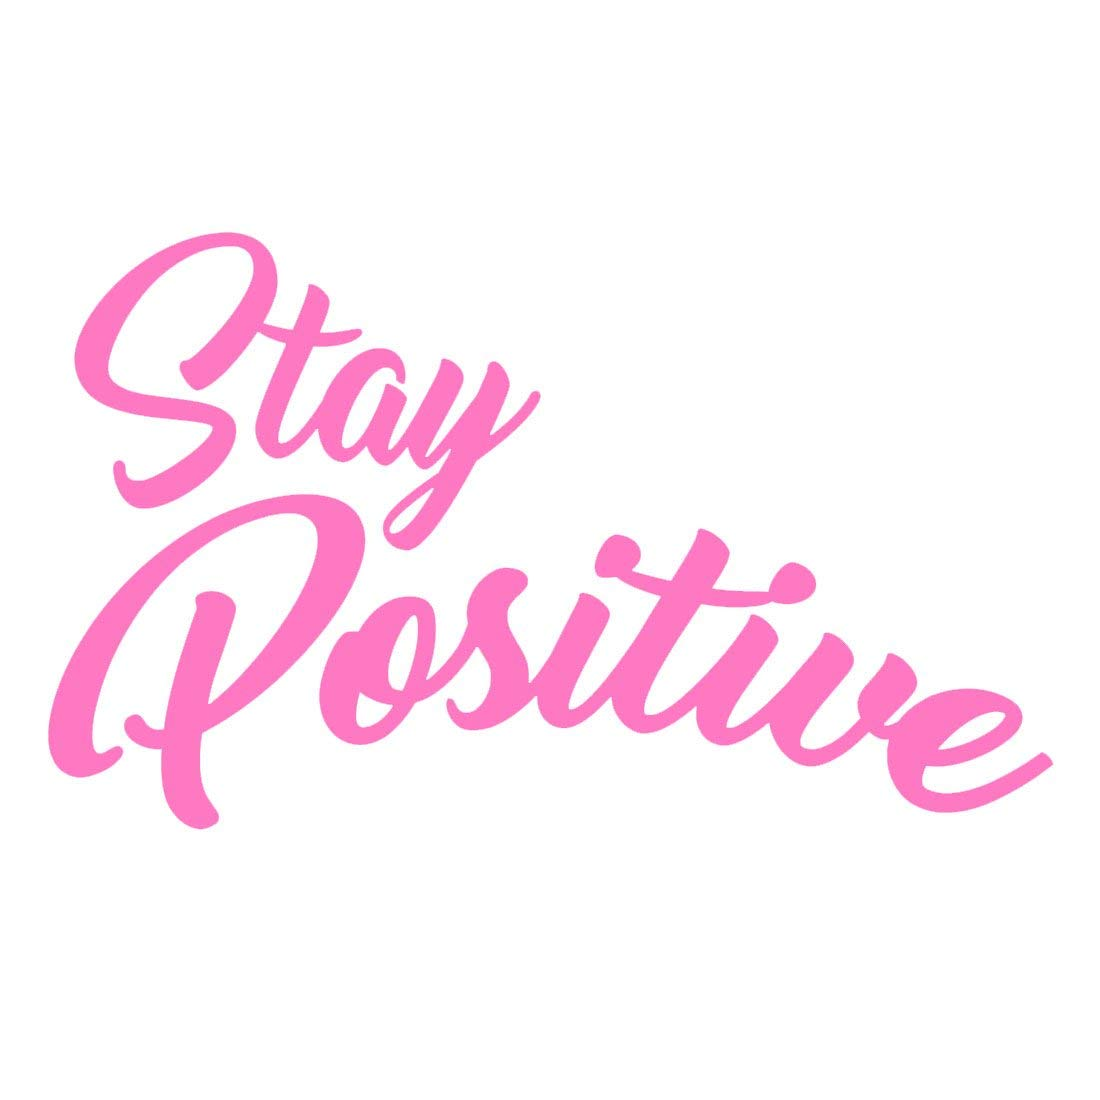 "VWAQ Stay Positive Vinyl Wall Decal, Uplifting Positivity Wall Decor -18120 (Hot Pink, 18"" H X 30"" W)"